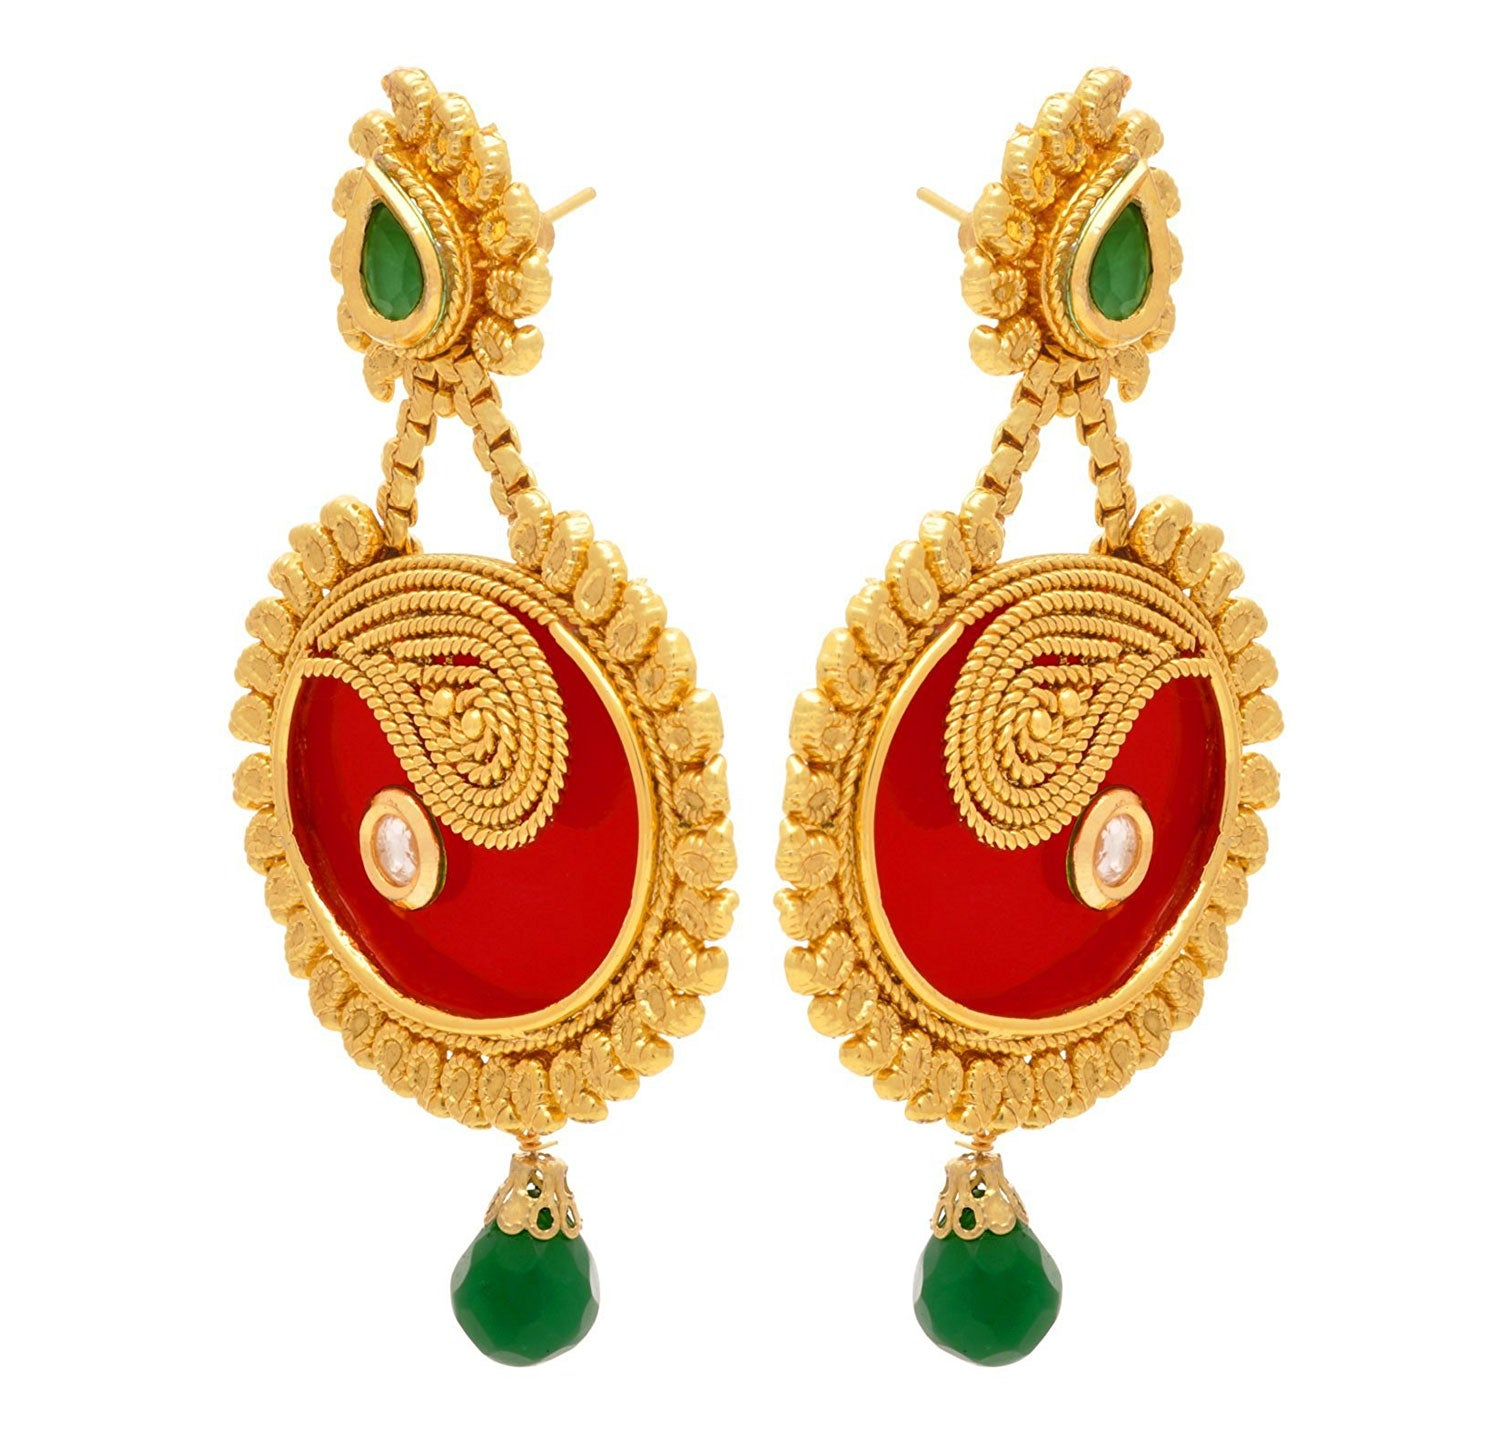 JFL - Traditional Ethnic Radiant Ruby Emerald One Gram Gold Plated Sensational Designer Earrings for Women and Girls